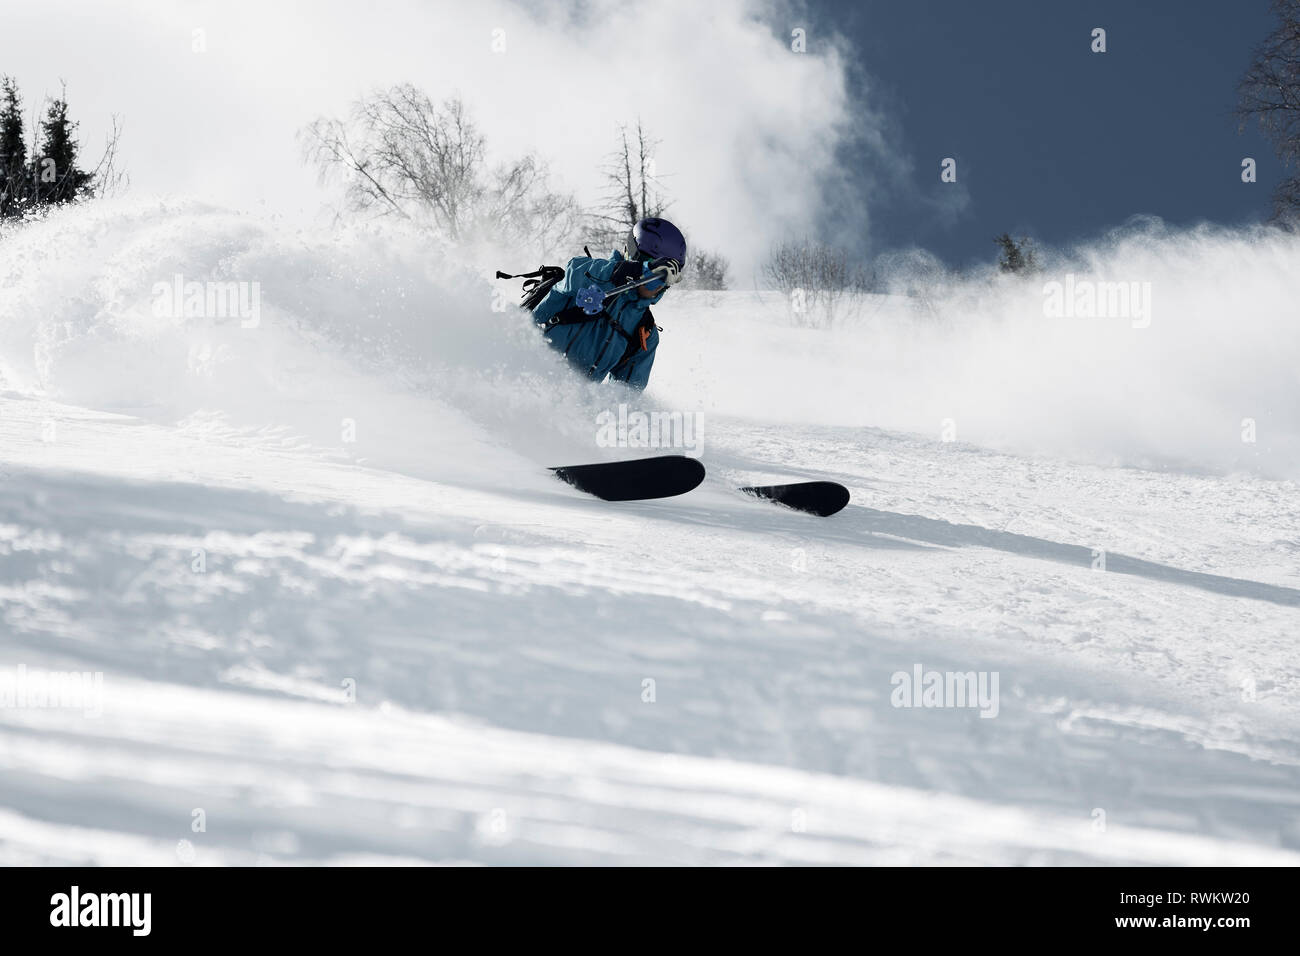 Male skier skiing down mountainside, low angle view, Alpe-d'Huez, Rhone-Alpes, France - Stock Image